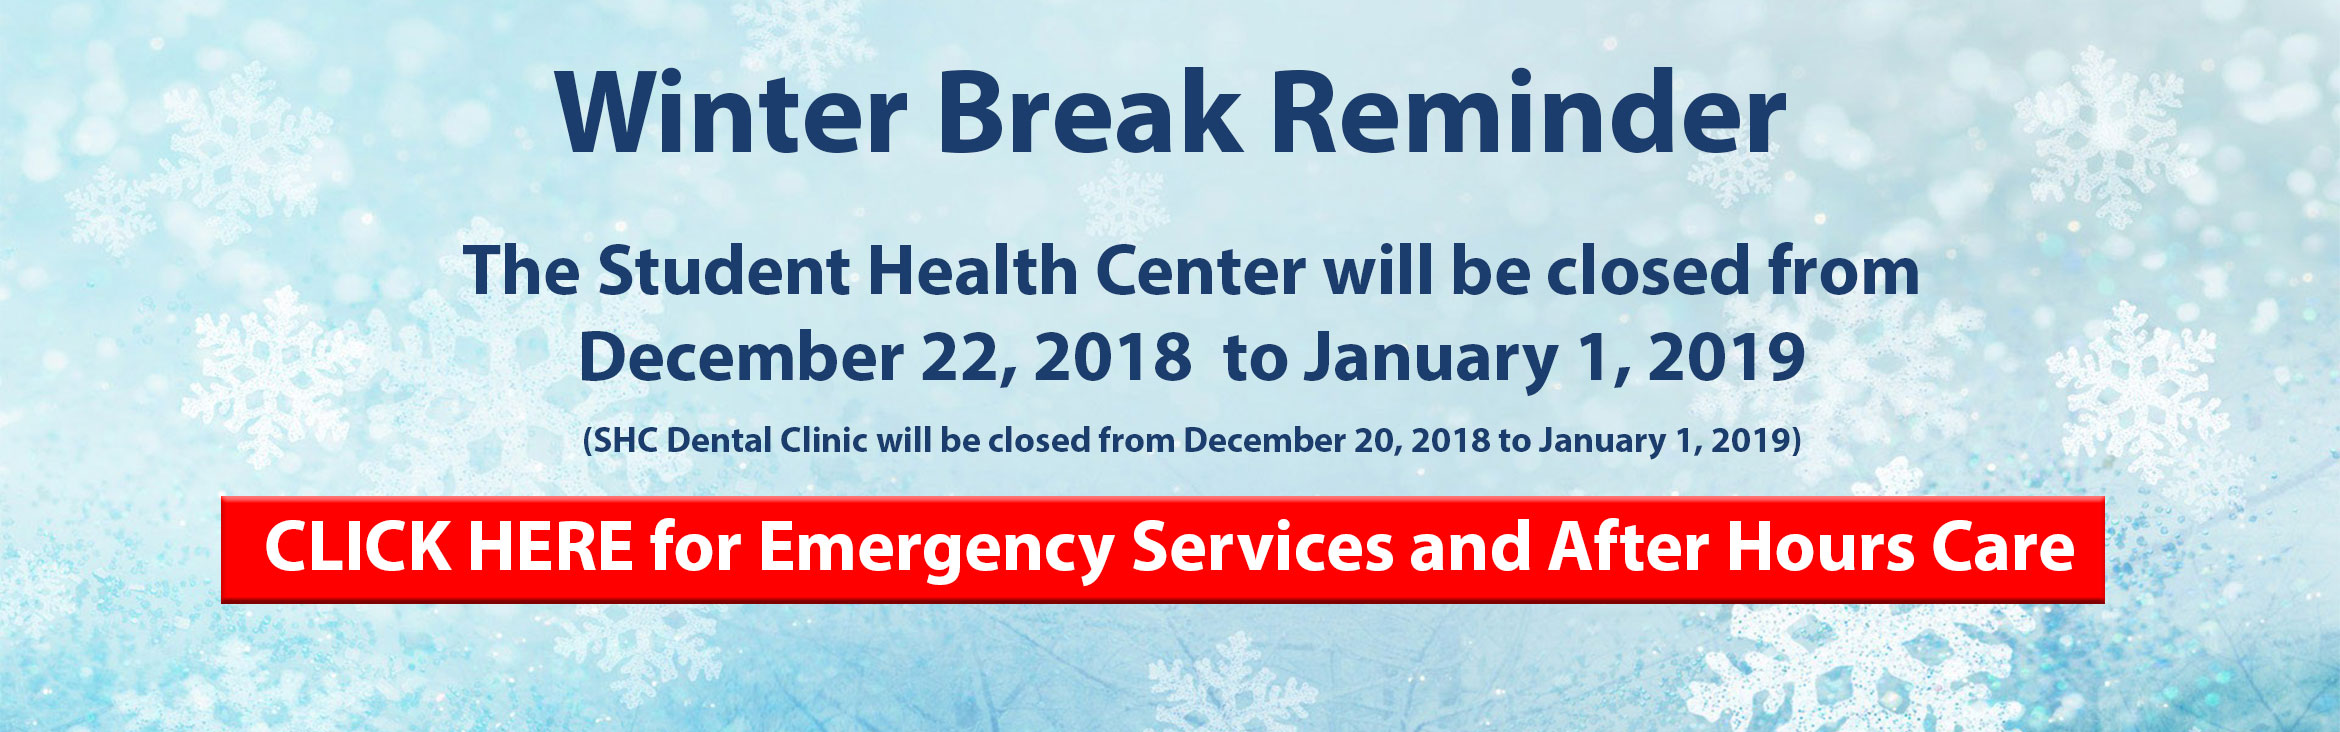 Winter Break Reminder.  The Student Health Center will be closed from December 22, 2018 to January 1, 2019.  SHC Dental Clinic will be closed from December 20, 2018 to January 1,2019